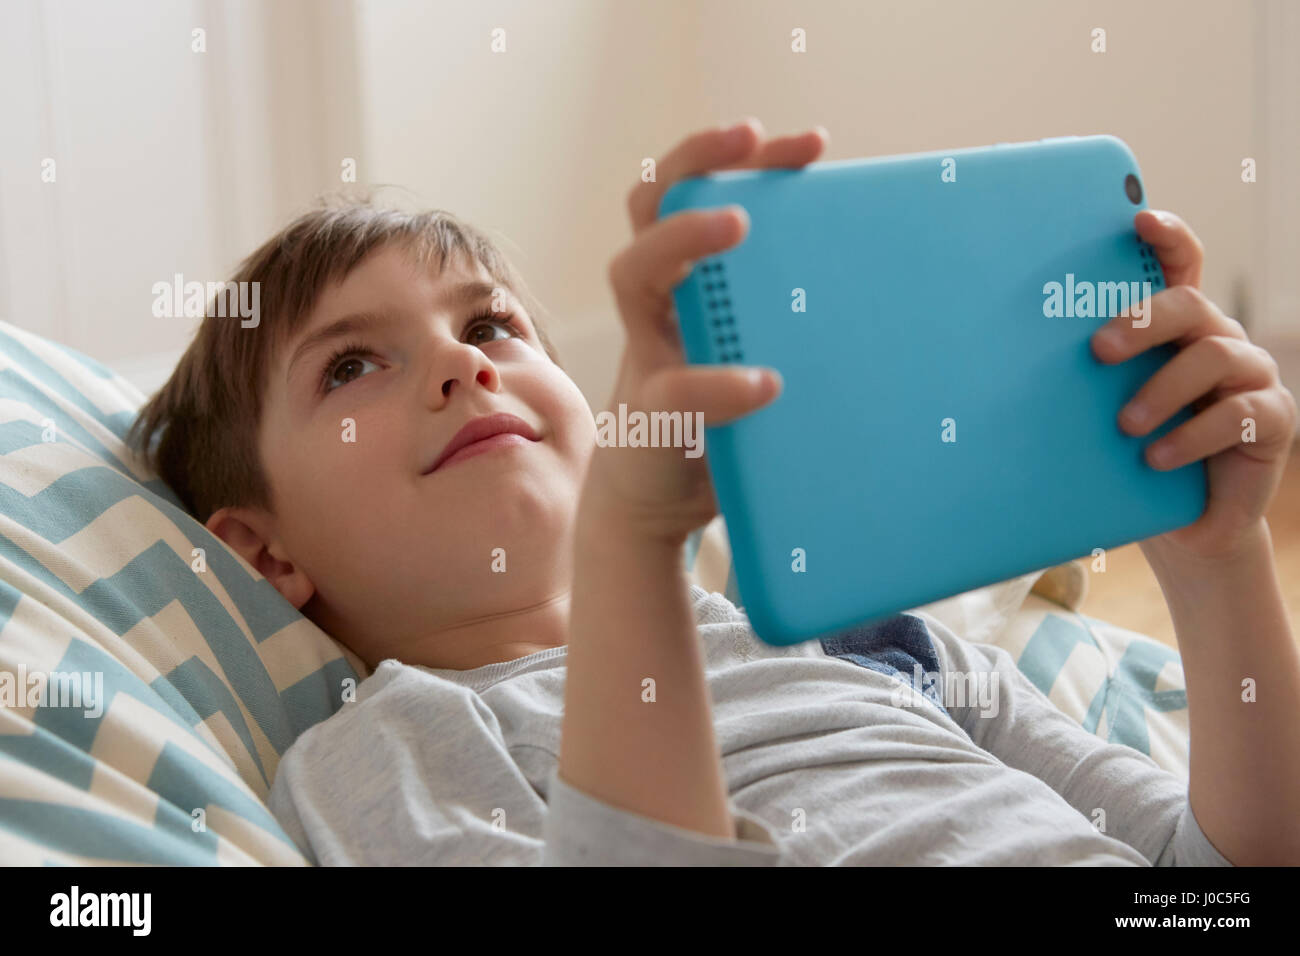 Boy reclining on beanbag chair looking up from digital tablet - Stock Image